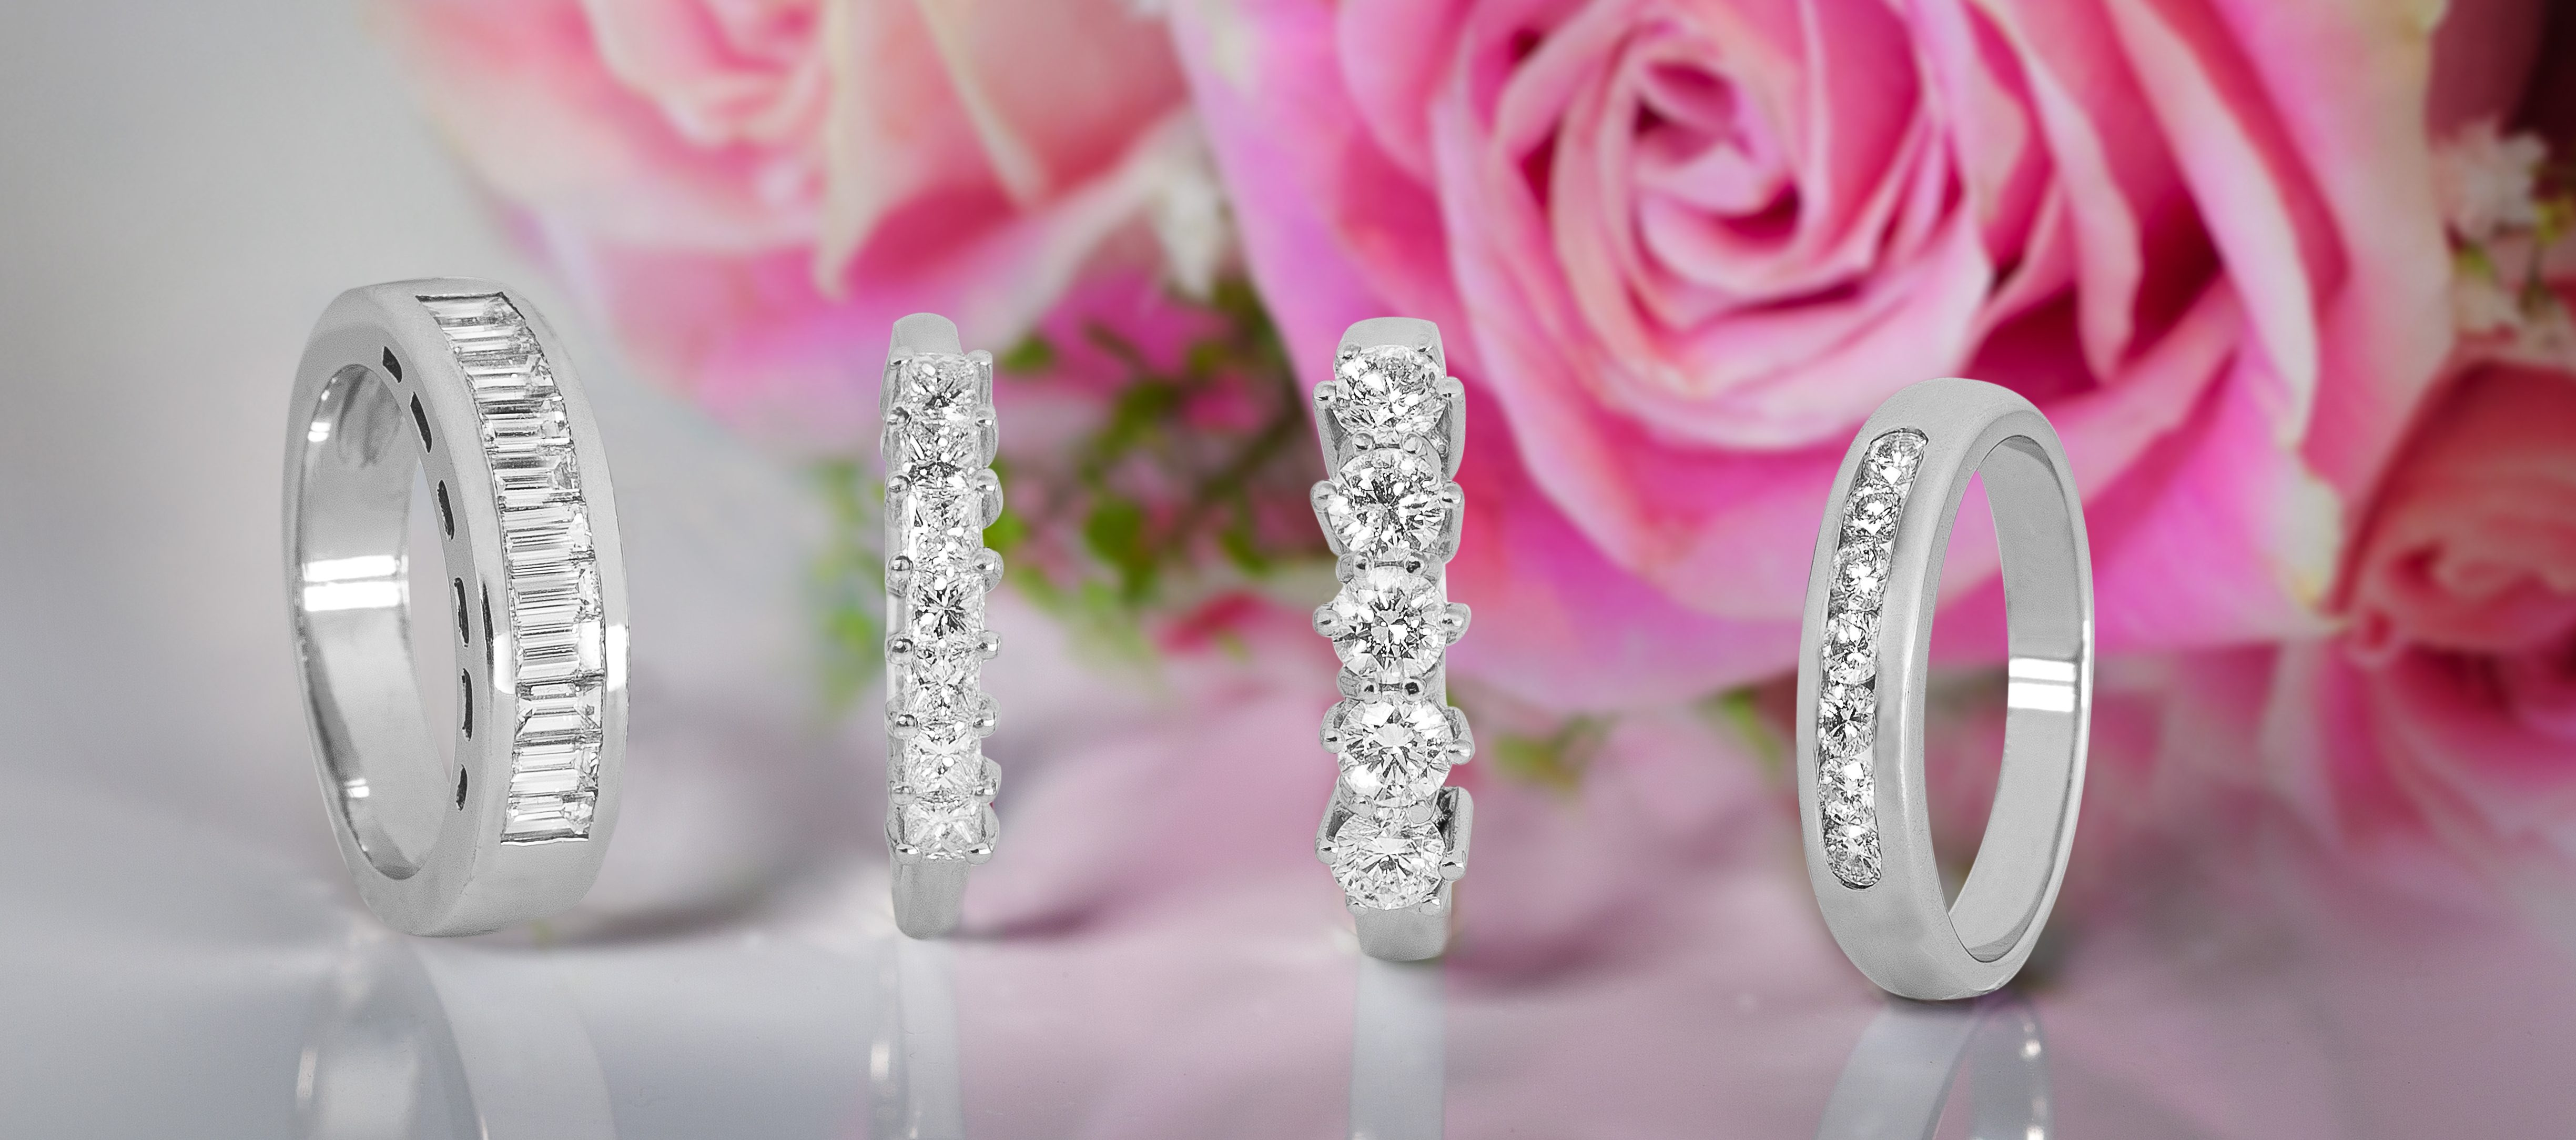 Tips to choose the perfect engagement ring - Eugenio Lumbreras